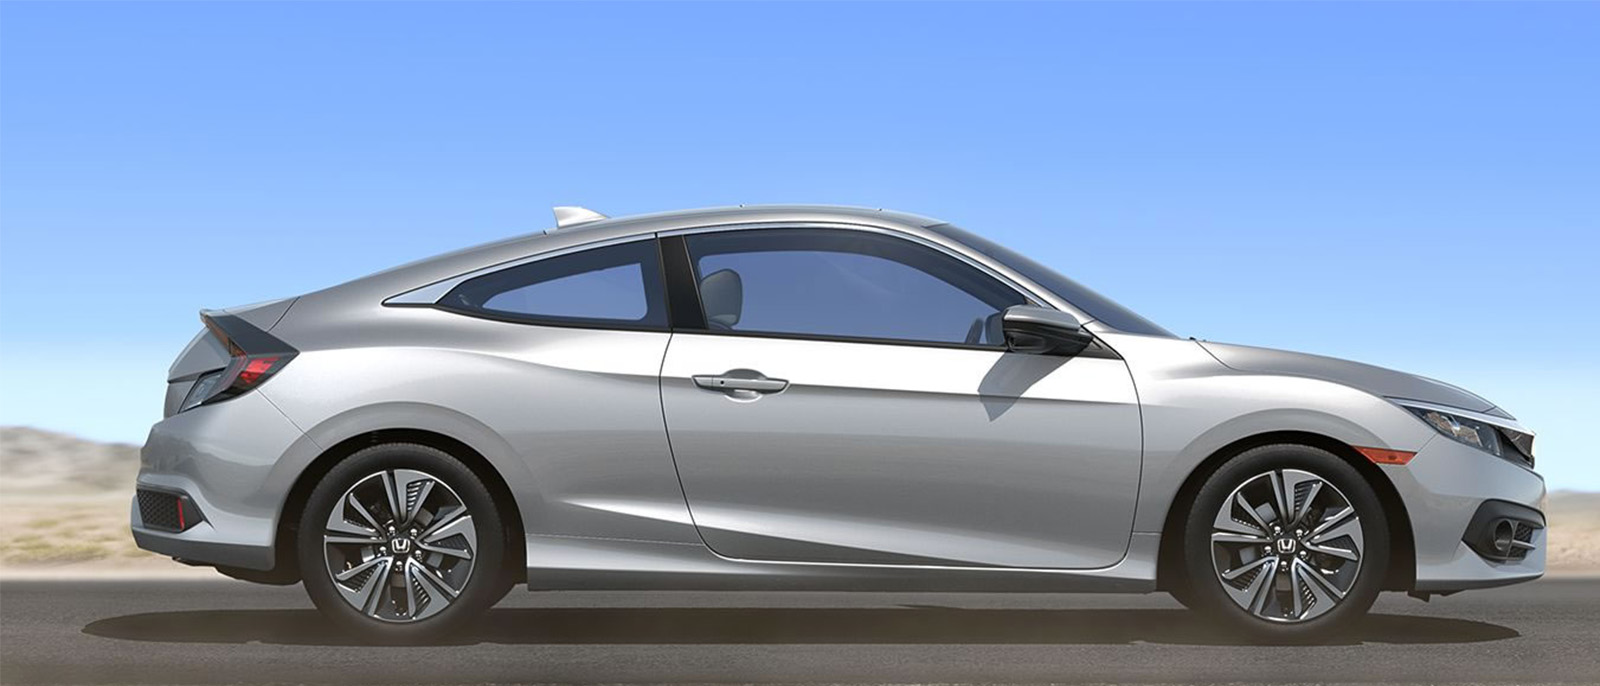 2017 Honda Civic Coupe exterior